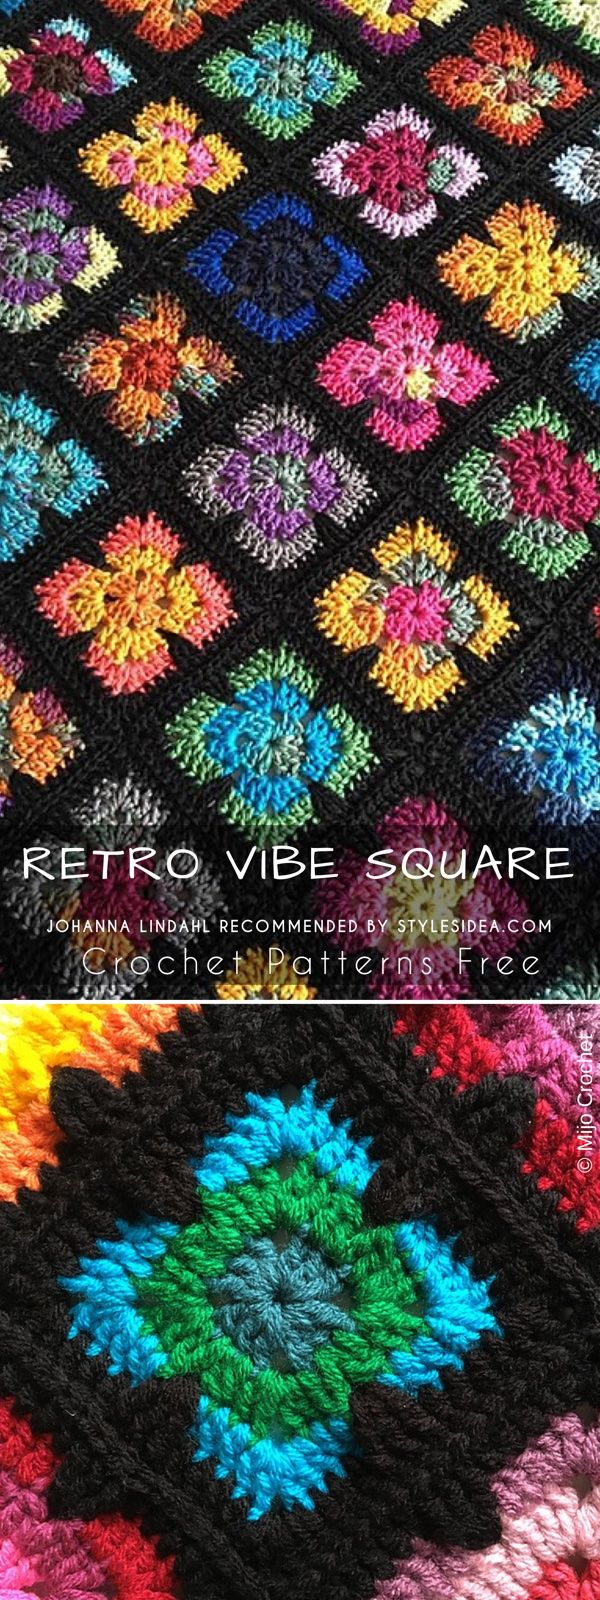 4907 Best Patterns Images On Pinterest Crochet Tm Diagram Ideas And Tips Juxtapost Retro Vibe Square Pattern Free